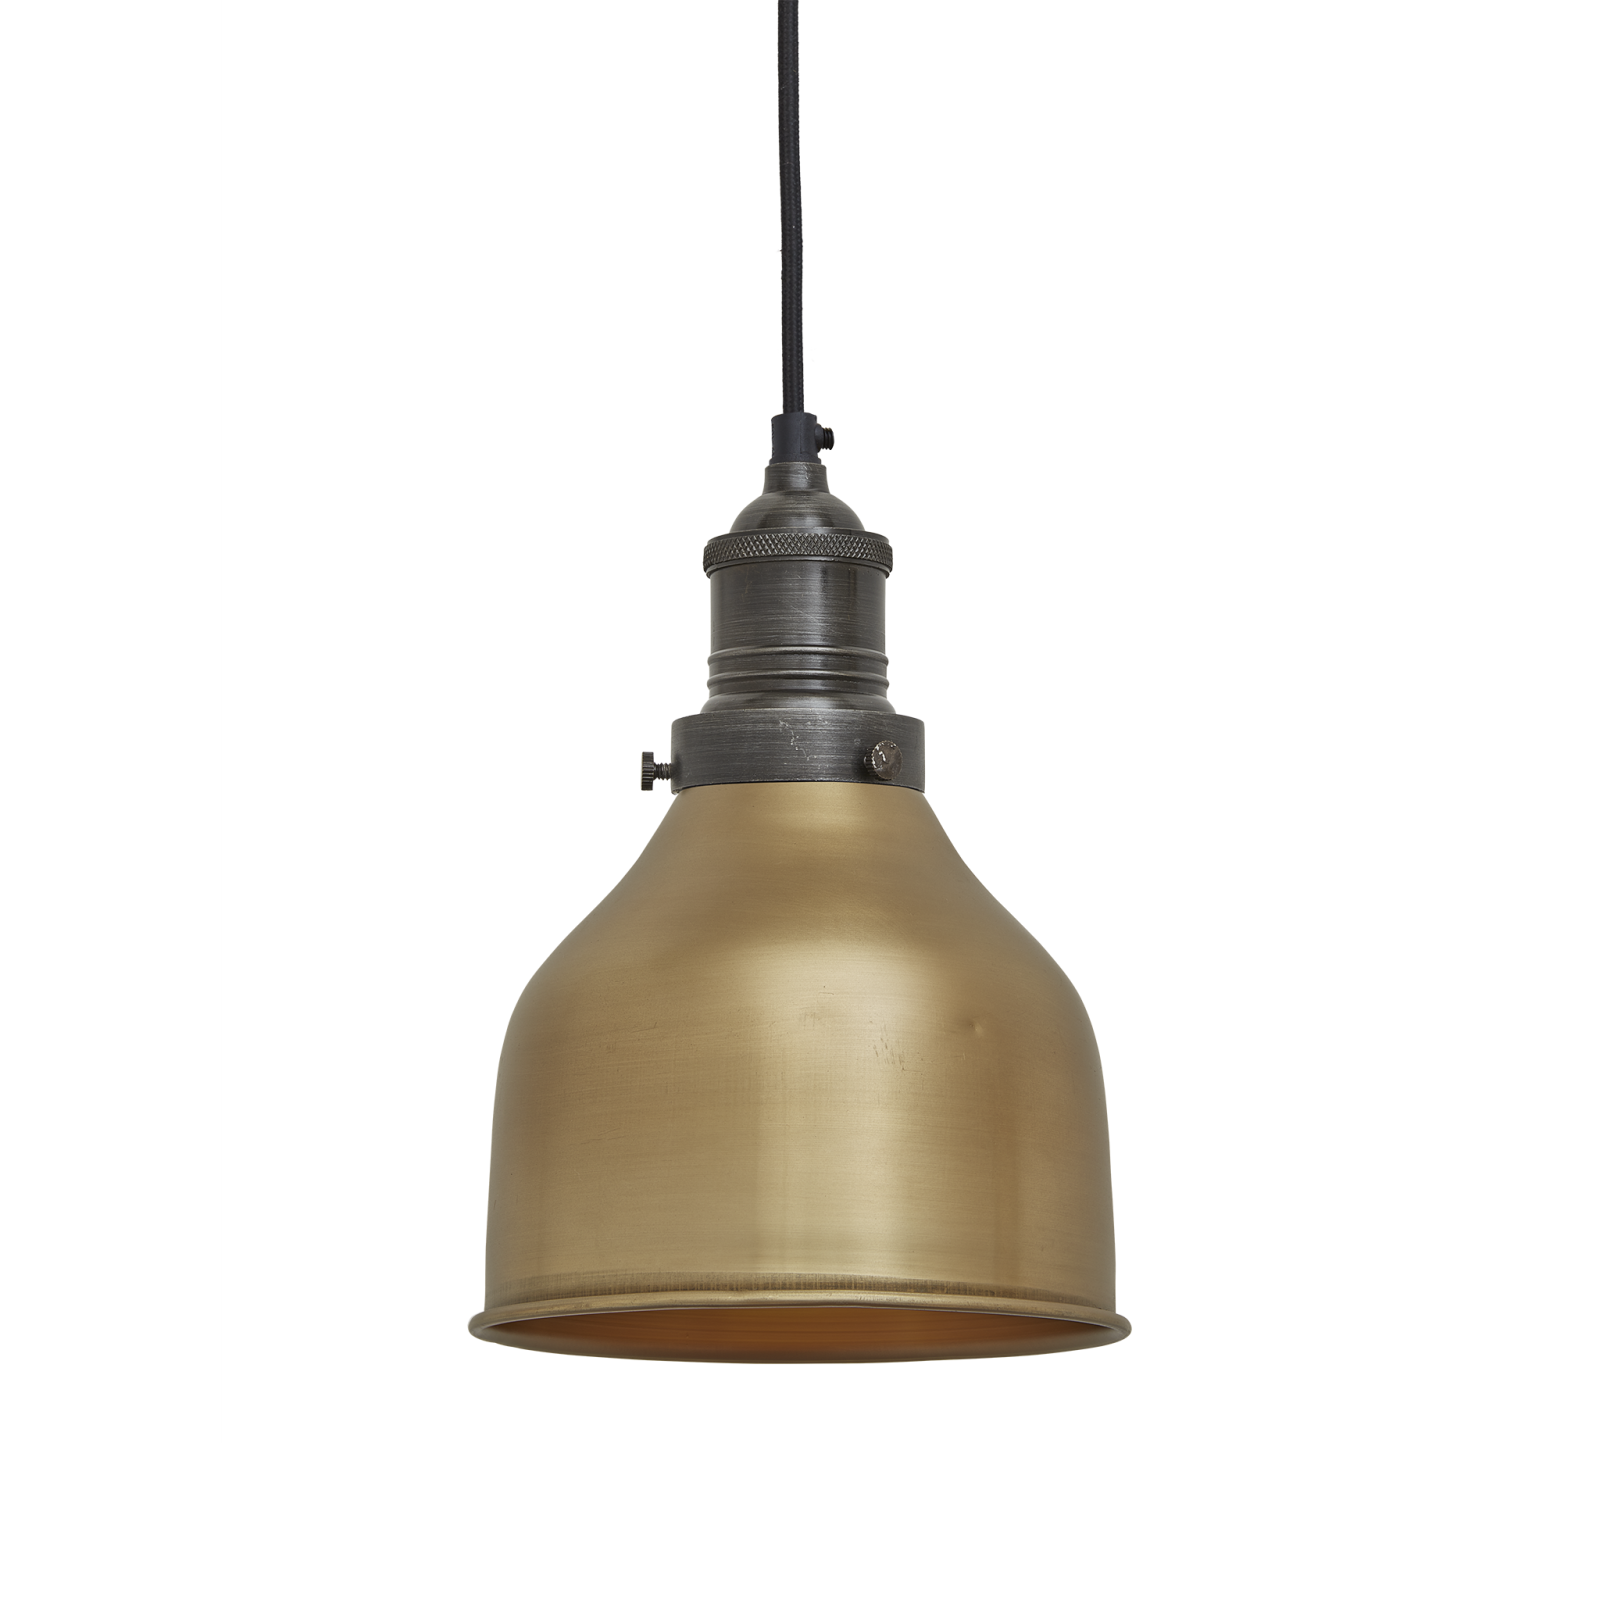 Brooklyn Cone Pendant - 7 Inch Brooklyn Cone Pendant - 7 Inch - Brass - Pewter Holder